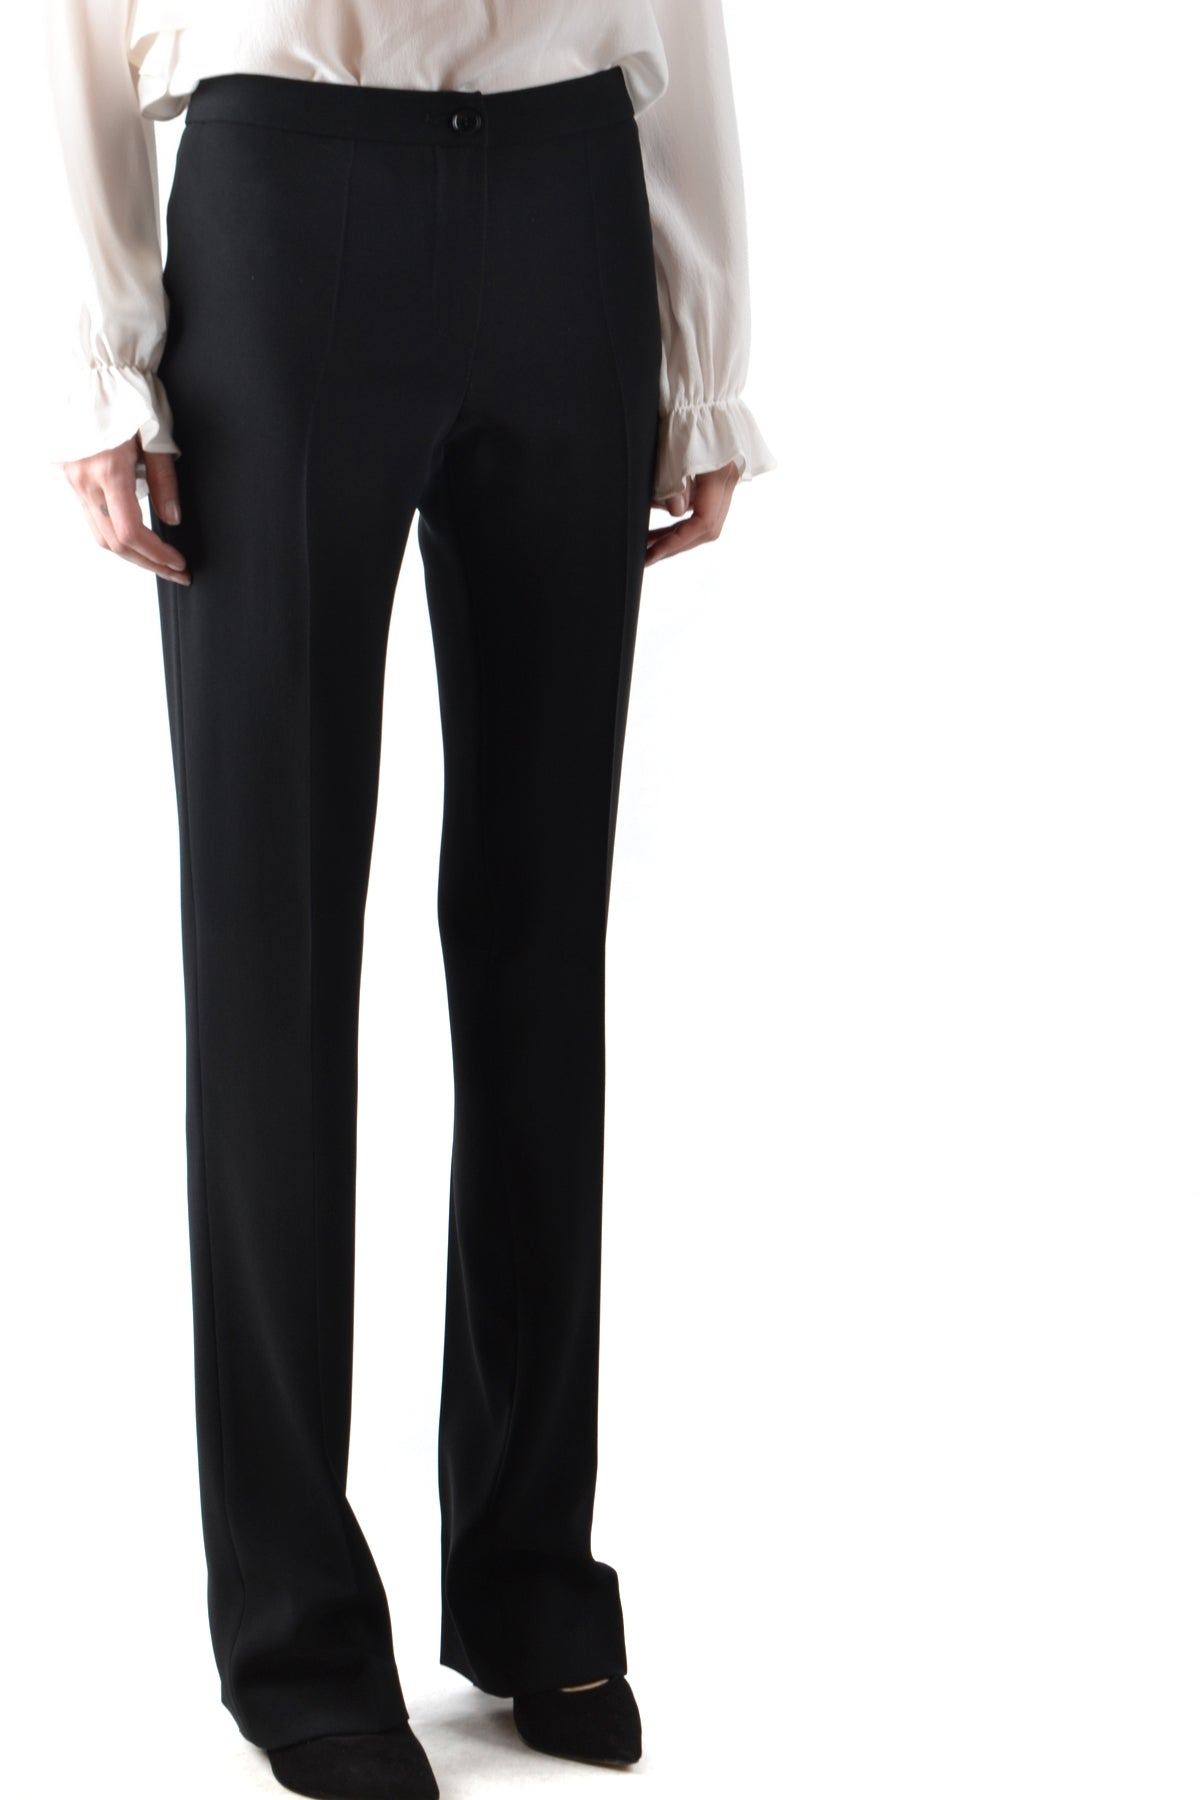 Trousers Boutique Moschino-Trousers - WOMAN-Product Details Season: Fall / WinterTerms: New With LabelMain Color: BlackGender: WomanMade In: ItalyManufacturer Part Number: Ra0302Size: ItYear: 2018Clothing Type: TrousersComposition: Acetate 70%, Polyester 30%-Keyomi-Sook